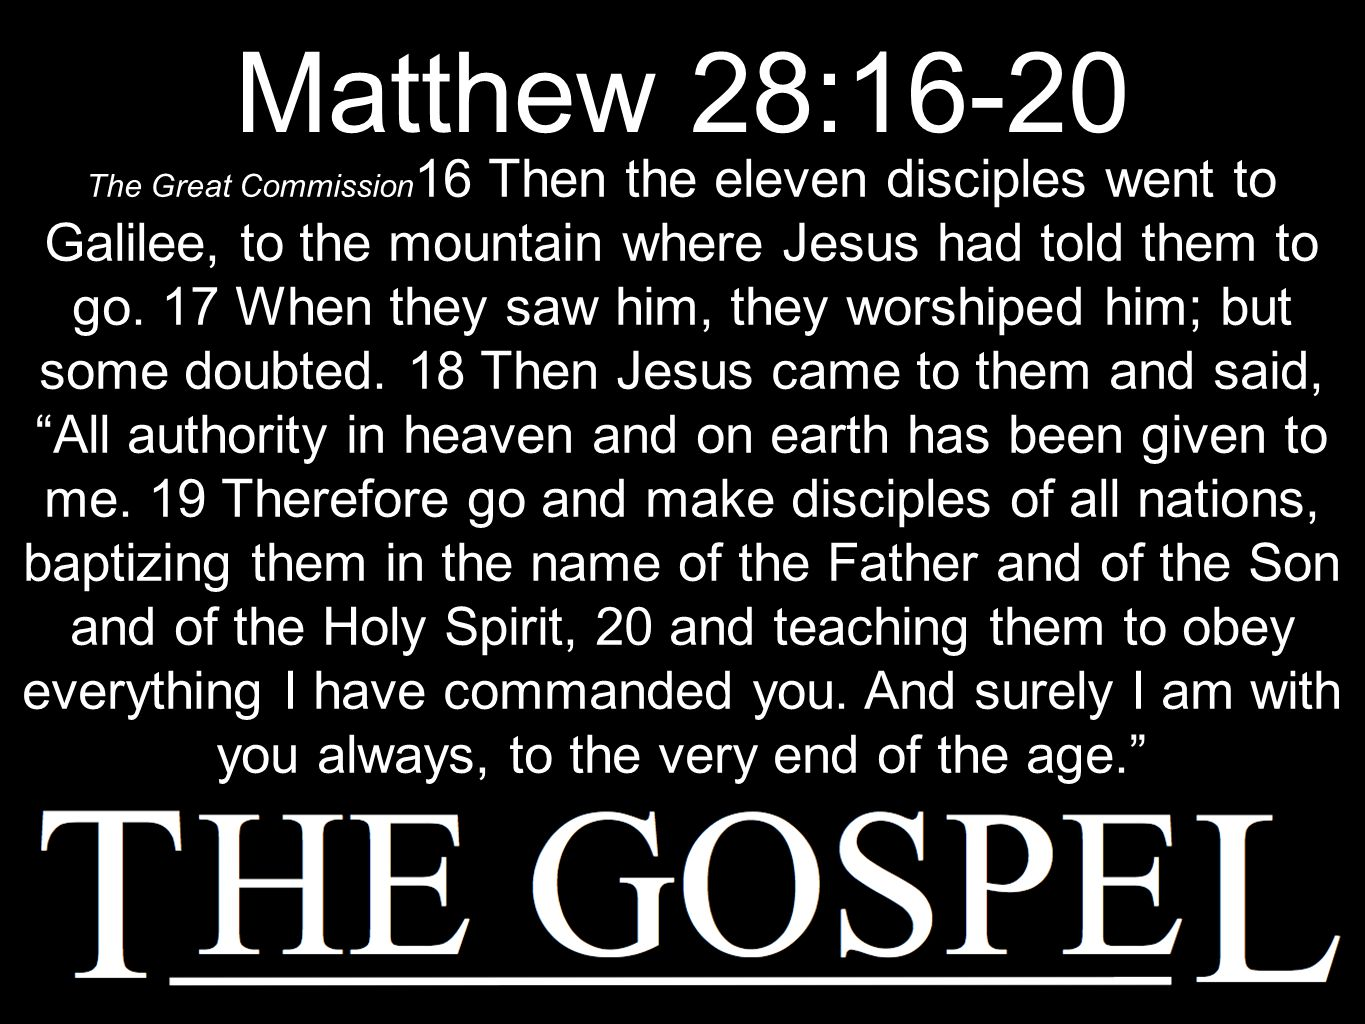 Matthew 28:16-20 The Great Commission 16 Then the eleven disciples went to Galilee, to the mountain where Jesus had told them to go.